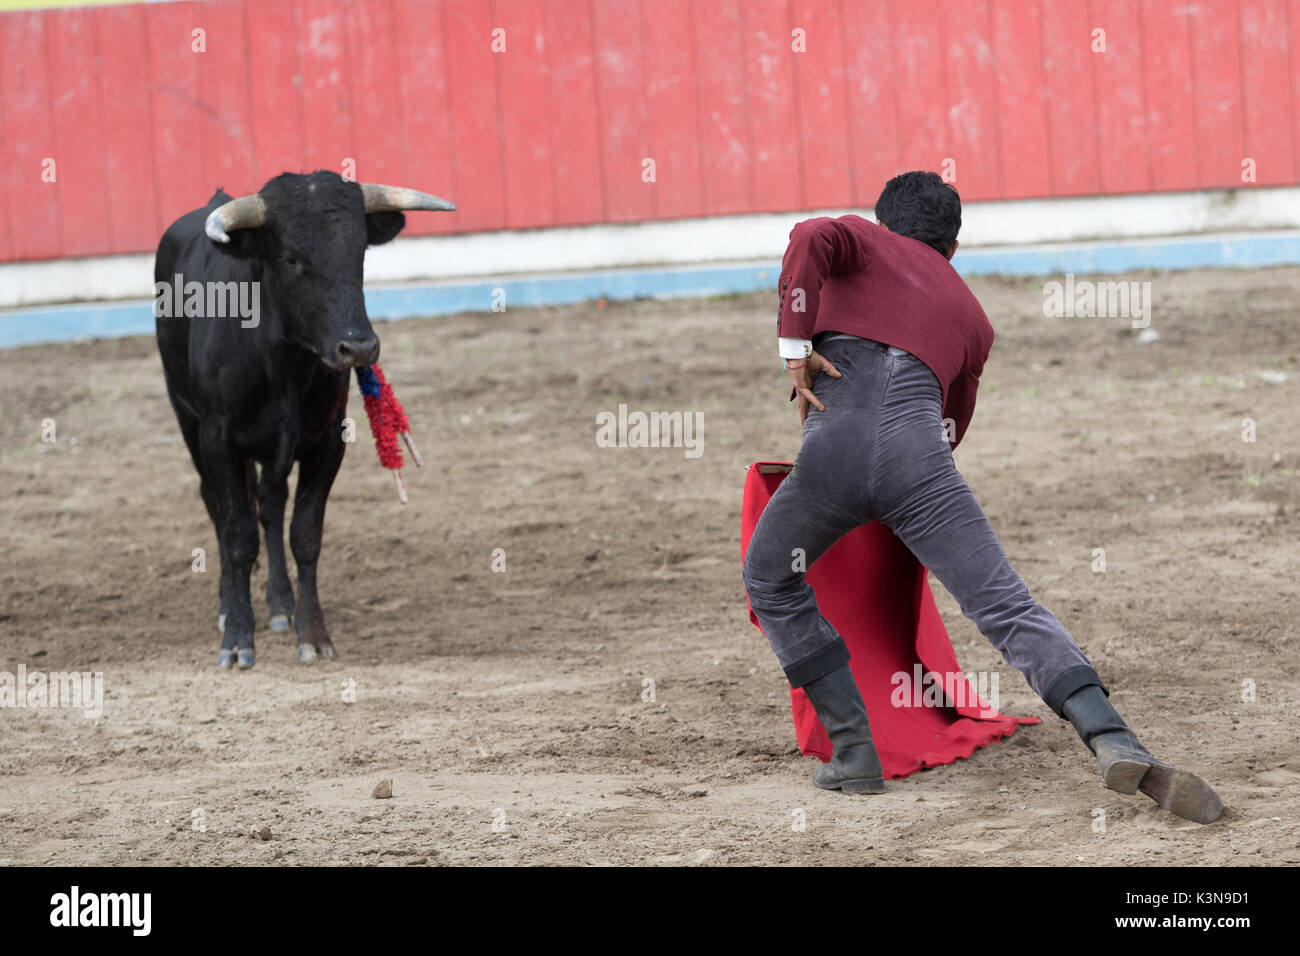 June 18, 2017 Pujili, Ecuador: bullfighter stands in front of bull in a challenging way in the arena - Stock Image